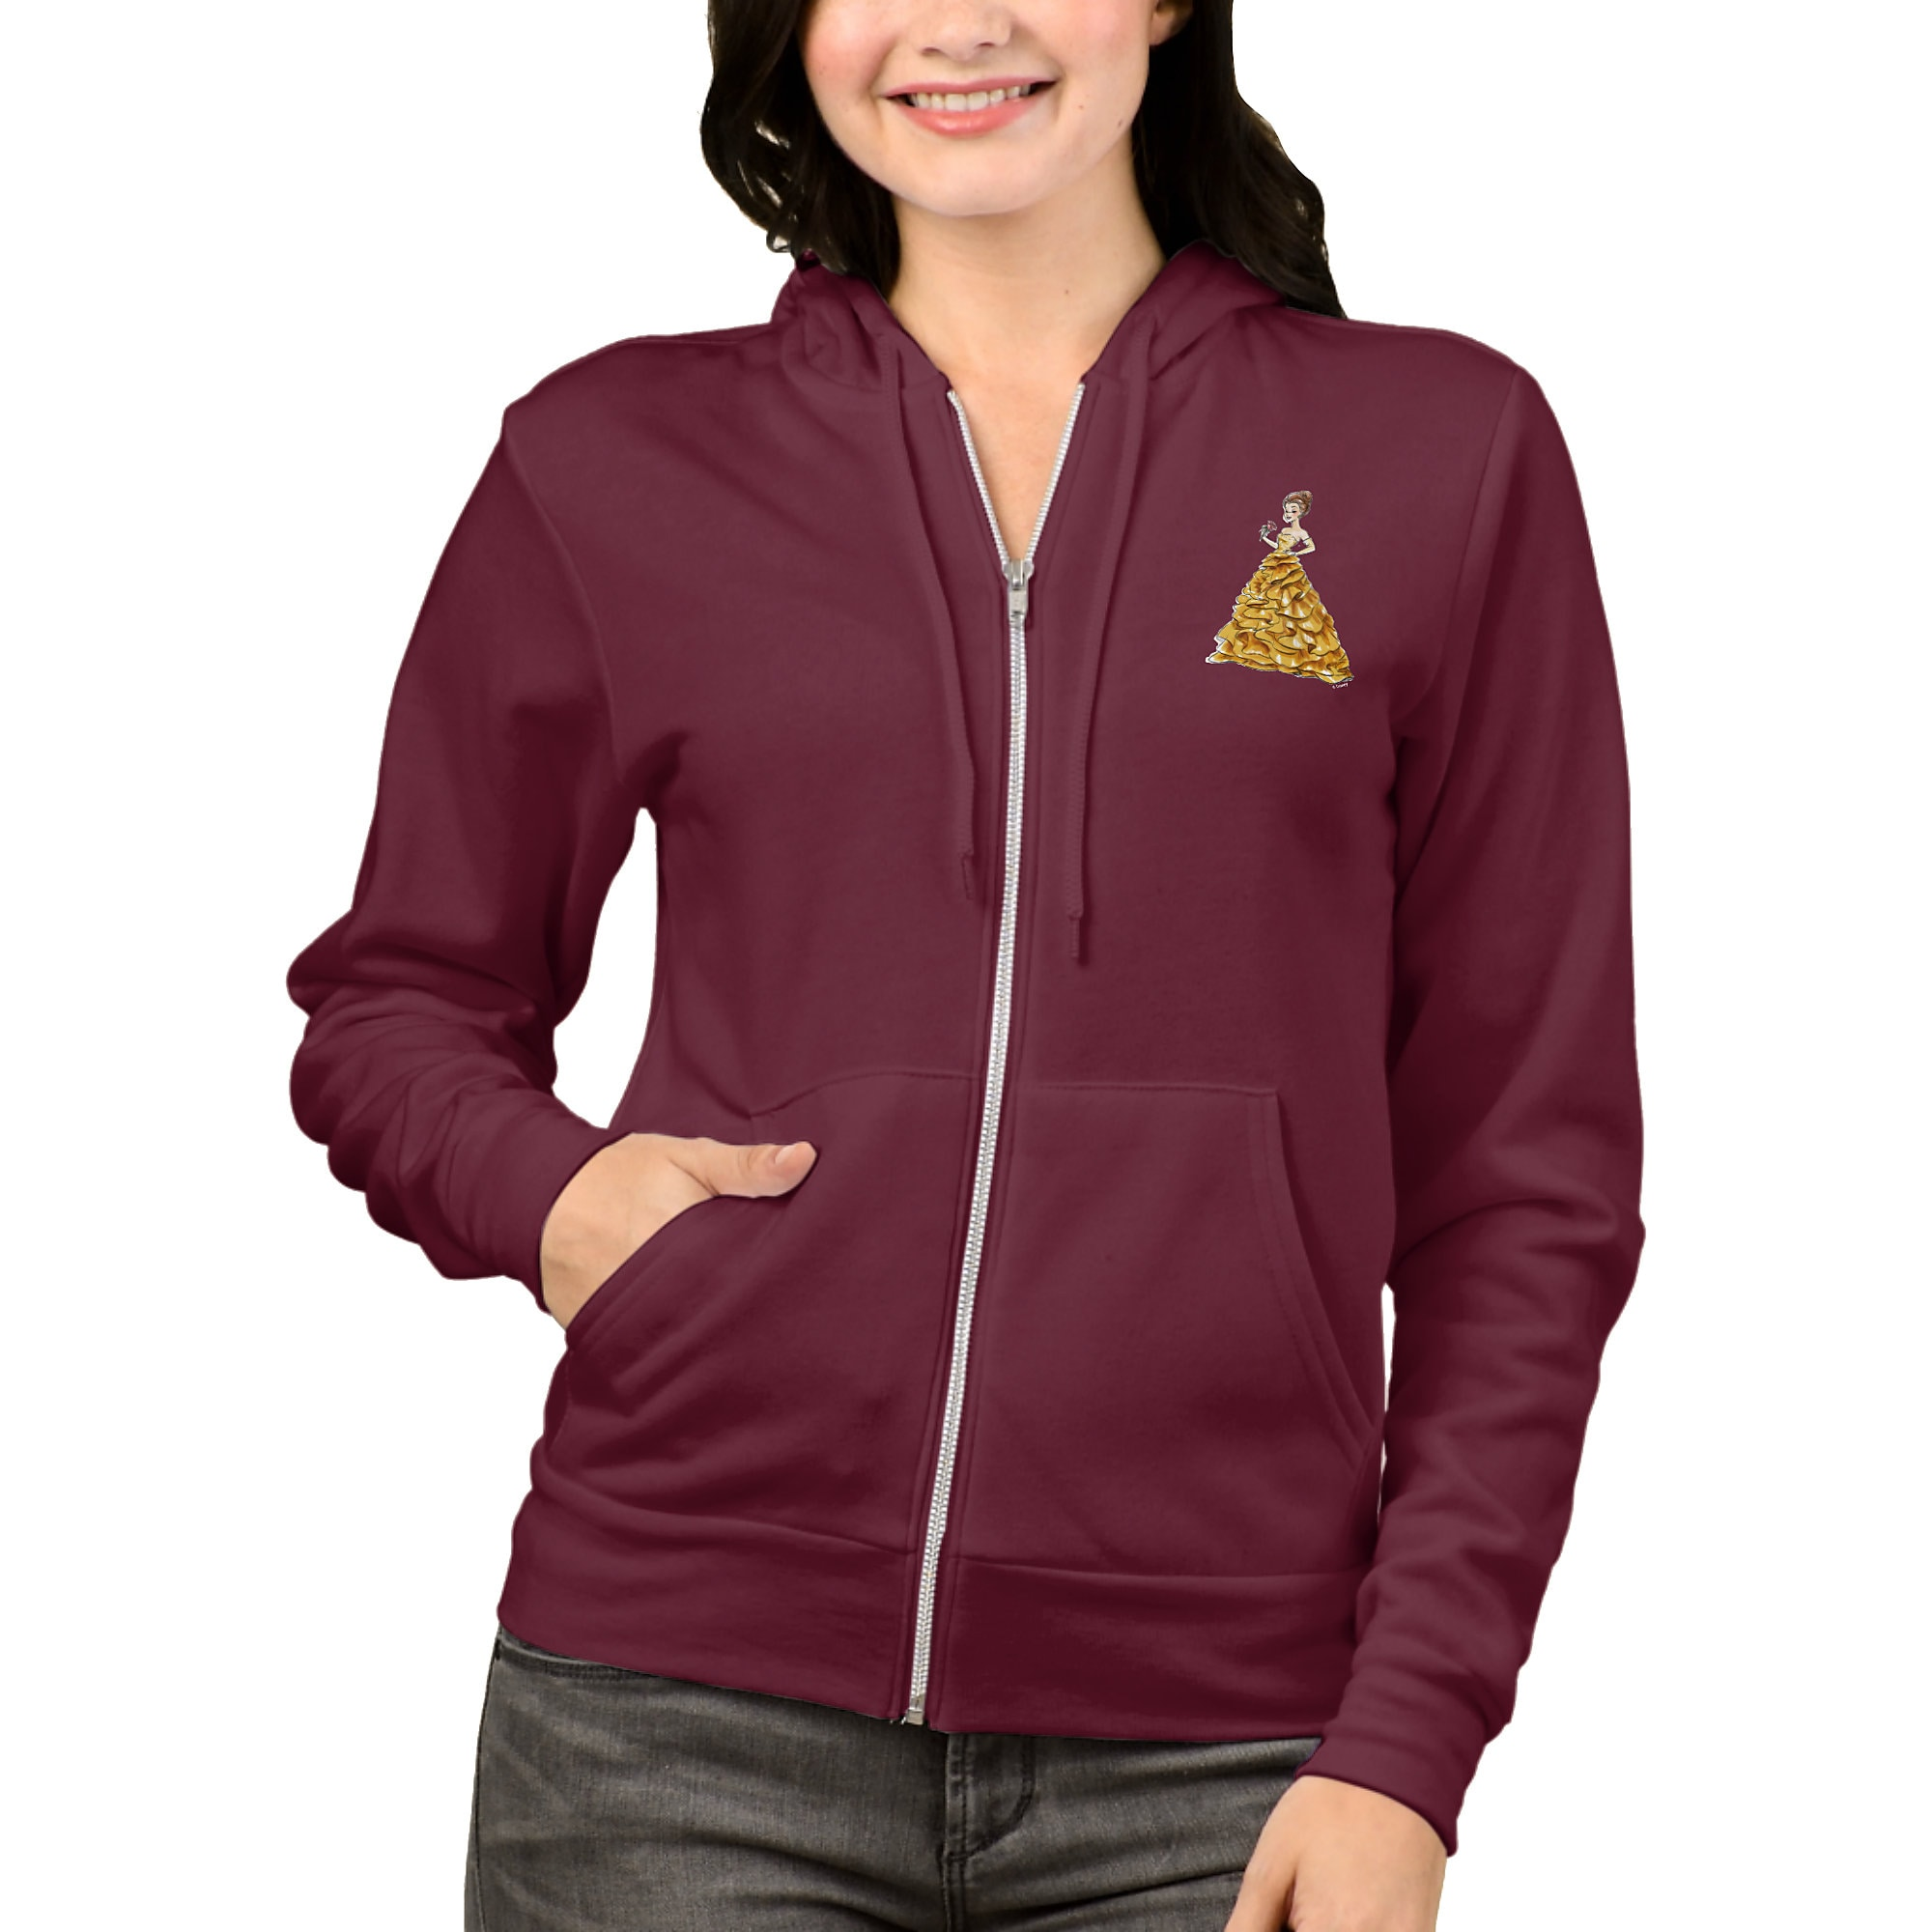 Belle Hoodie for Women - Art of Princess Designer Collection